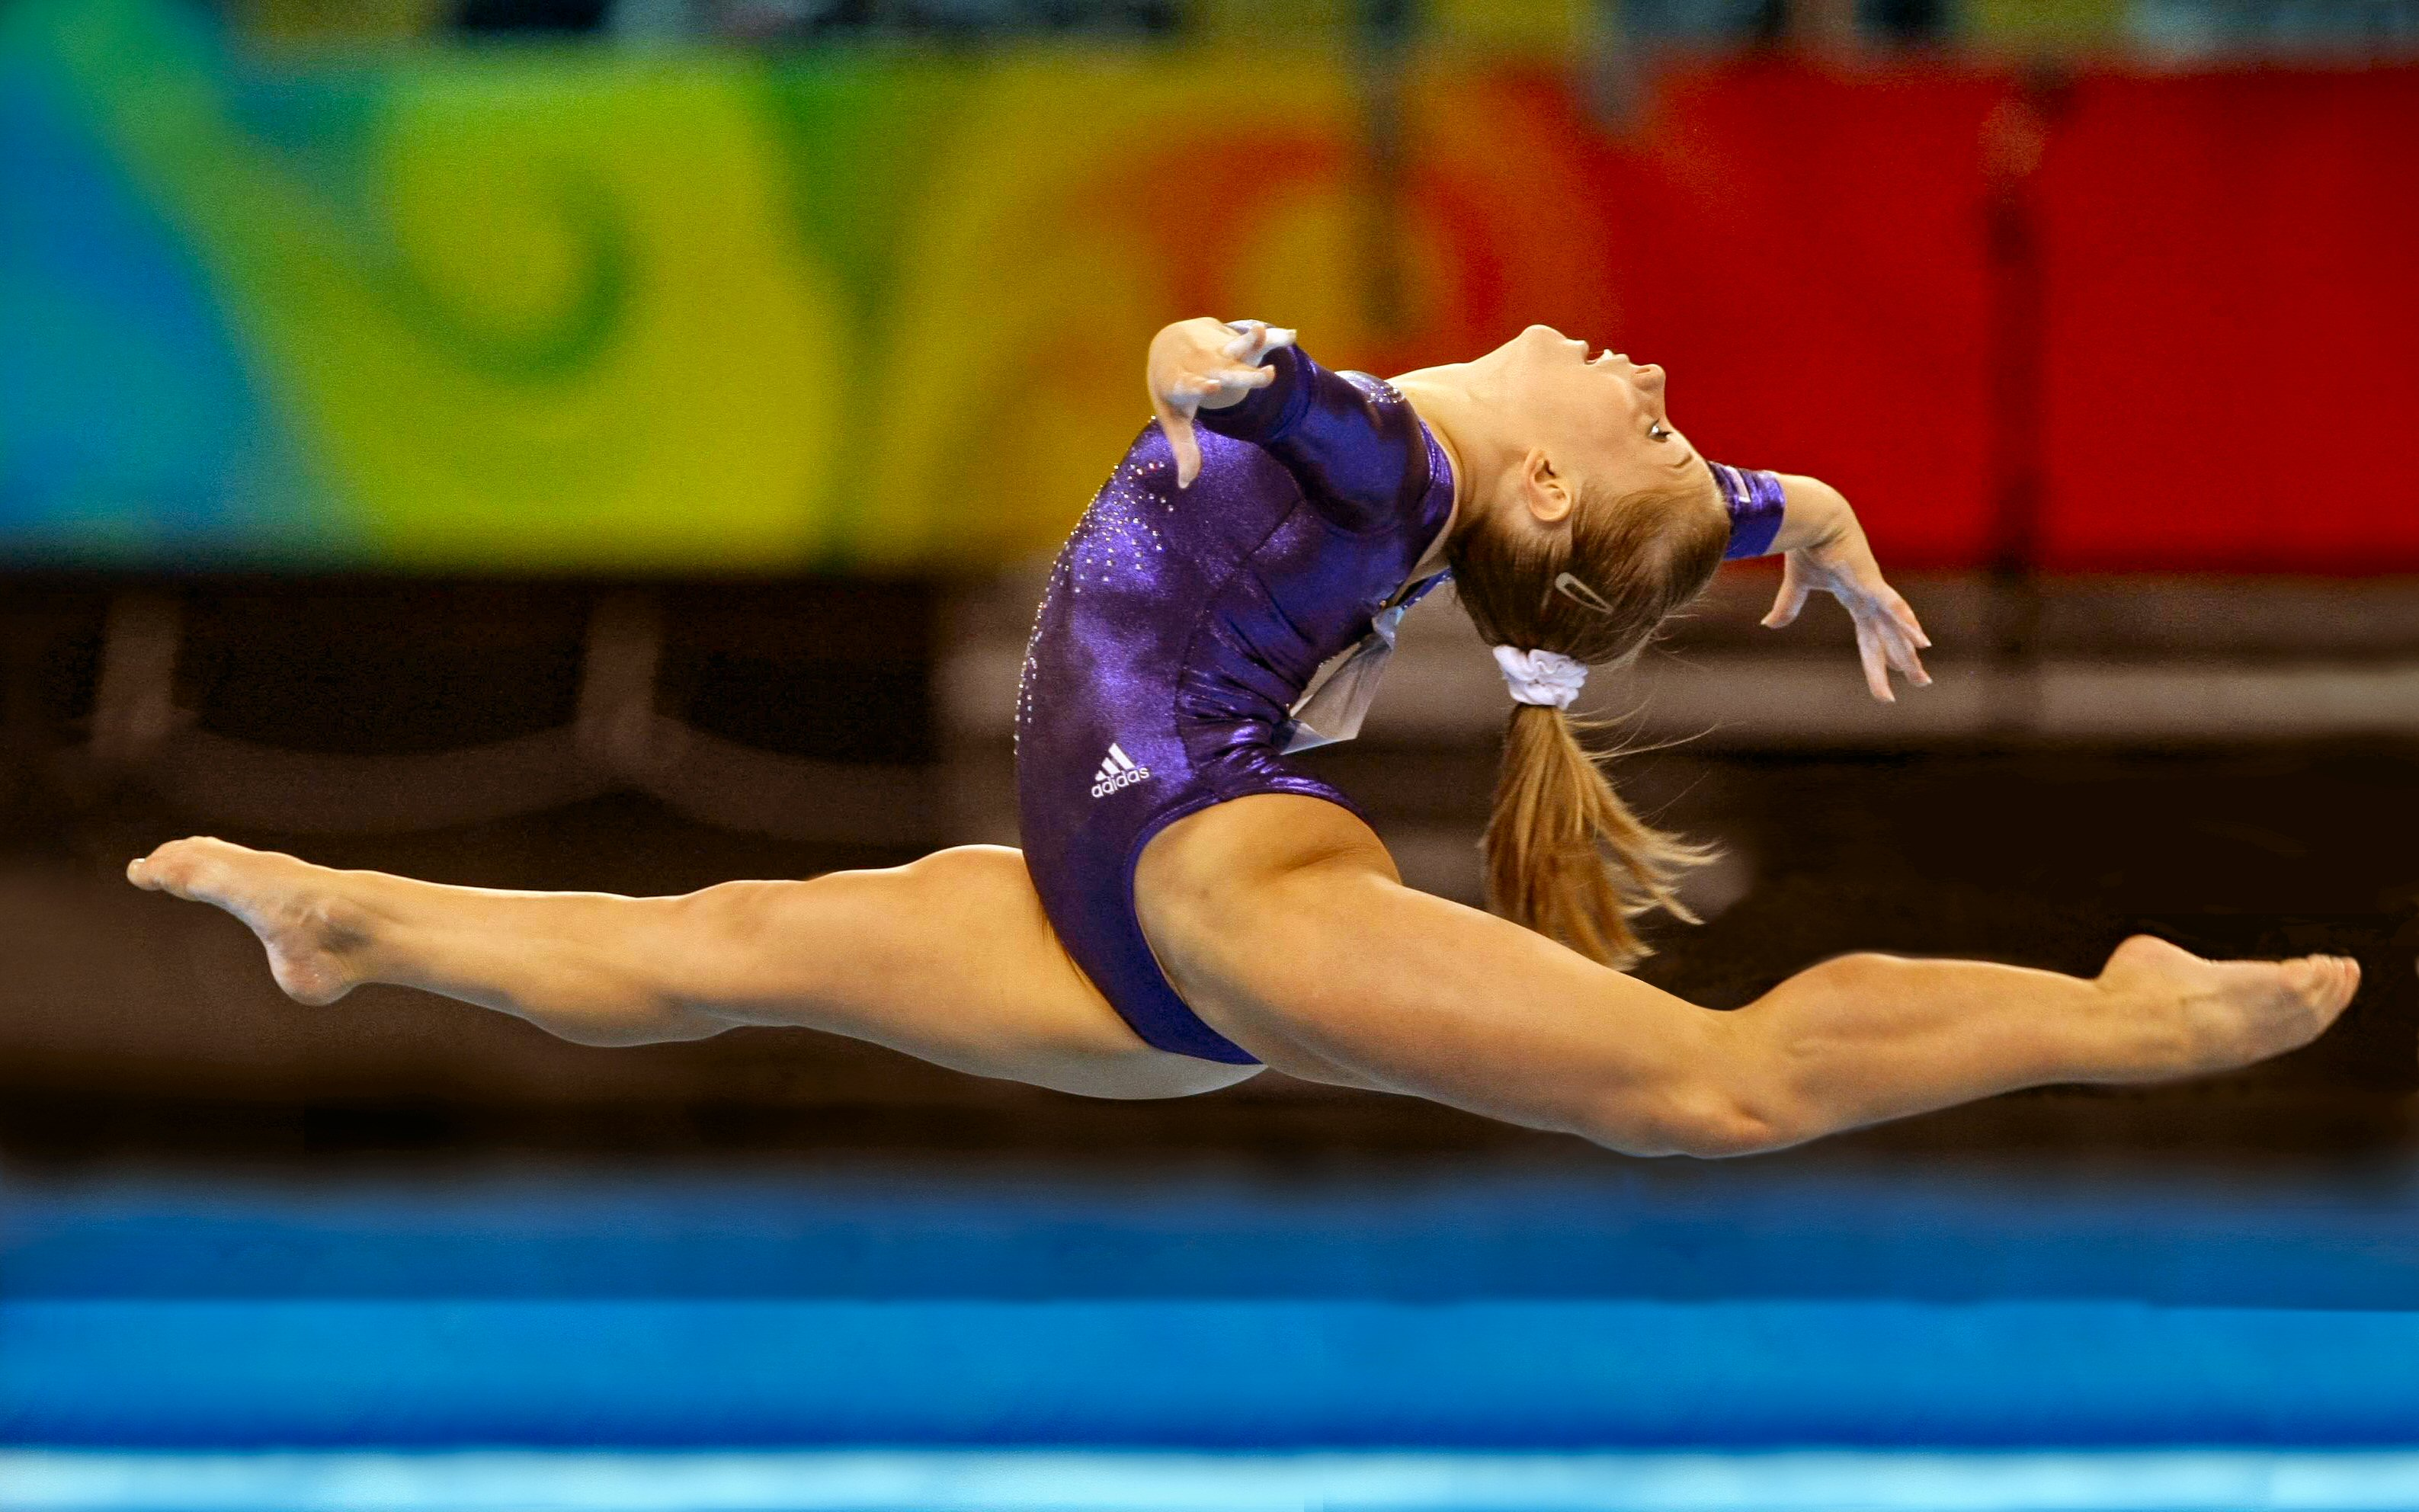 Sports Wallpapers Backgrounds Hd On The App Store: AMAZING BABE [115] Shawn Johnson [08april2014tuesday